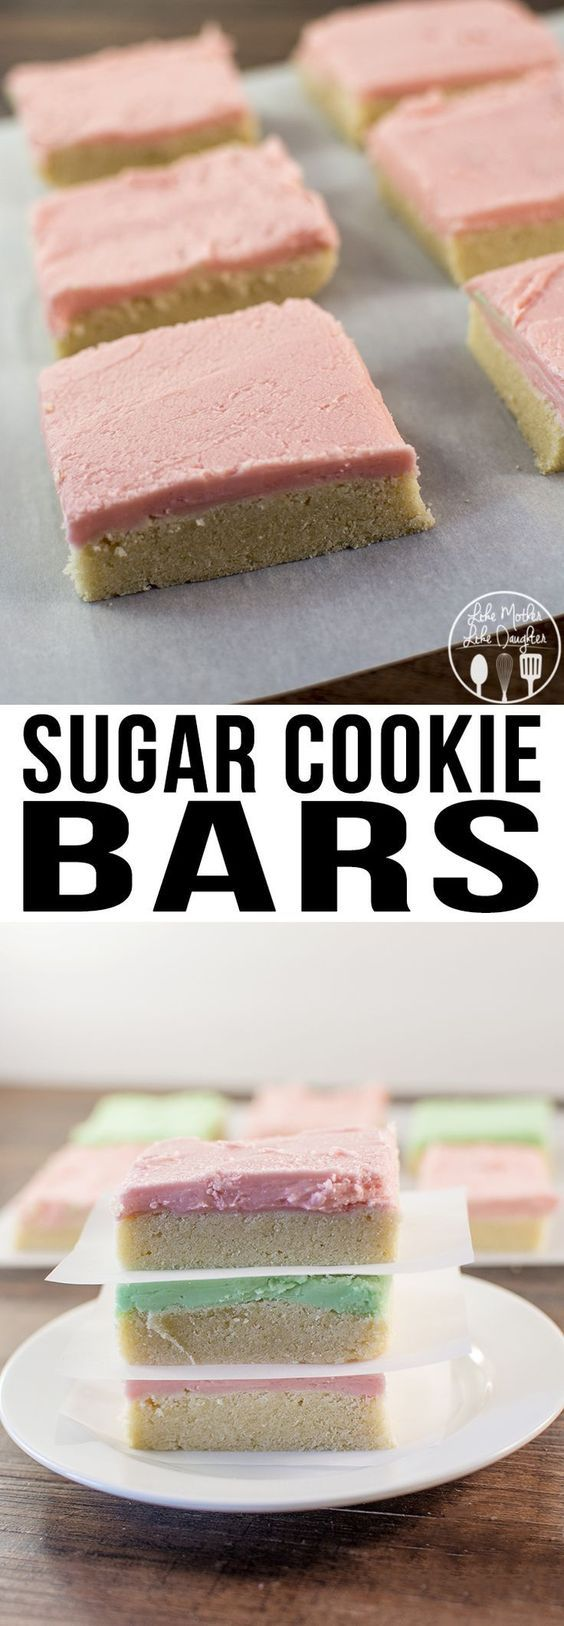 Sugar Cookie Bars -  These Sugar Cookie Bars are simple to make but have the same great softness and taste of regular sugar cookies, just much easier to make!